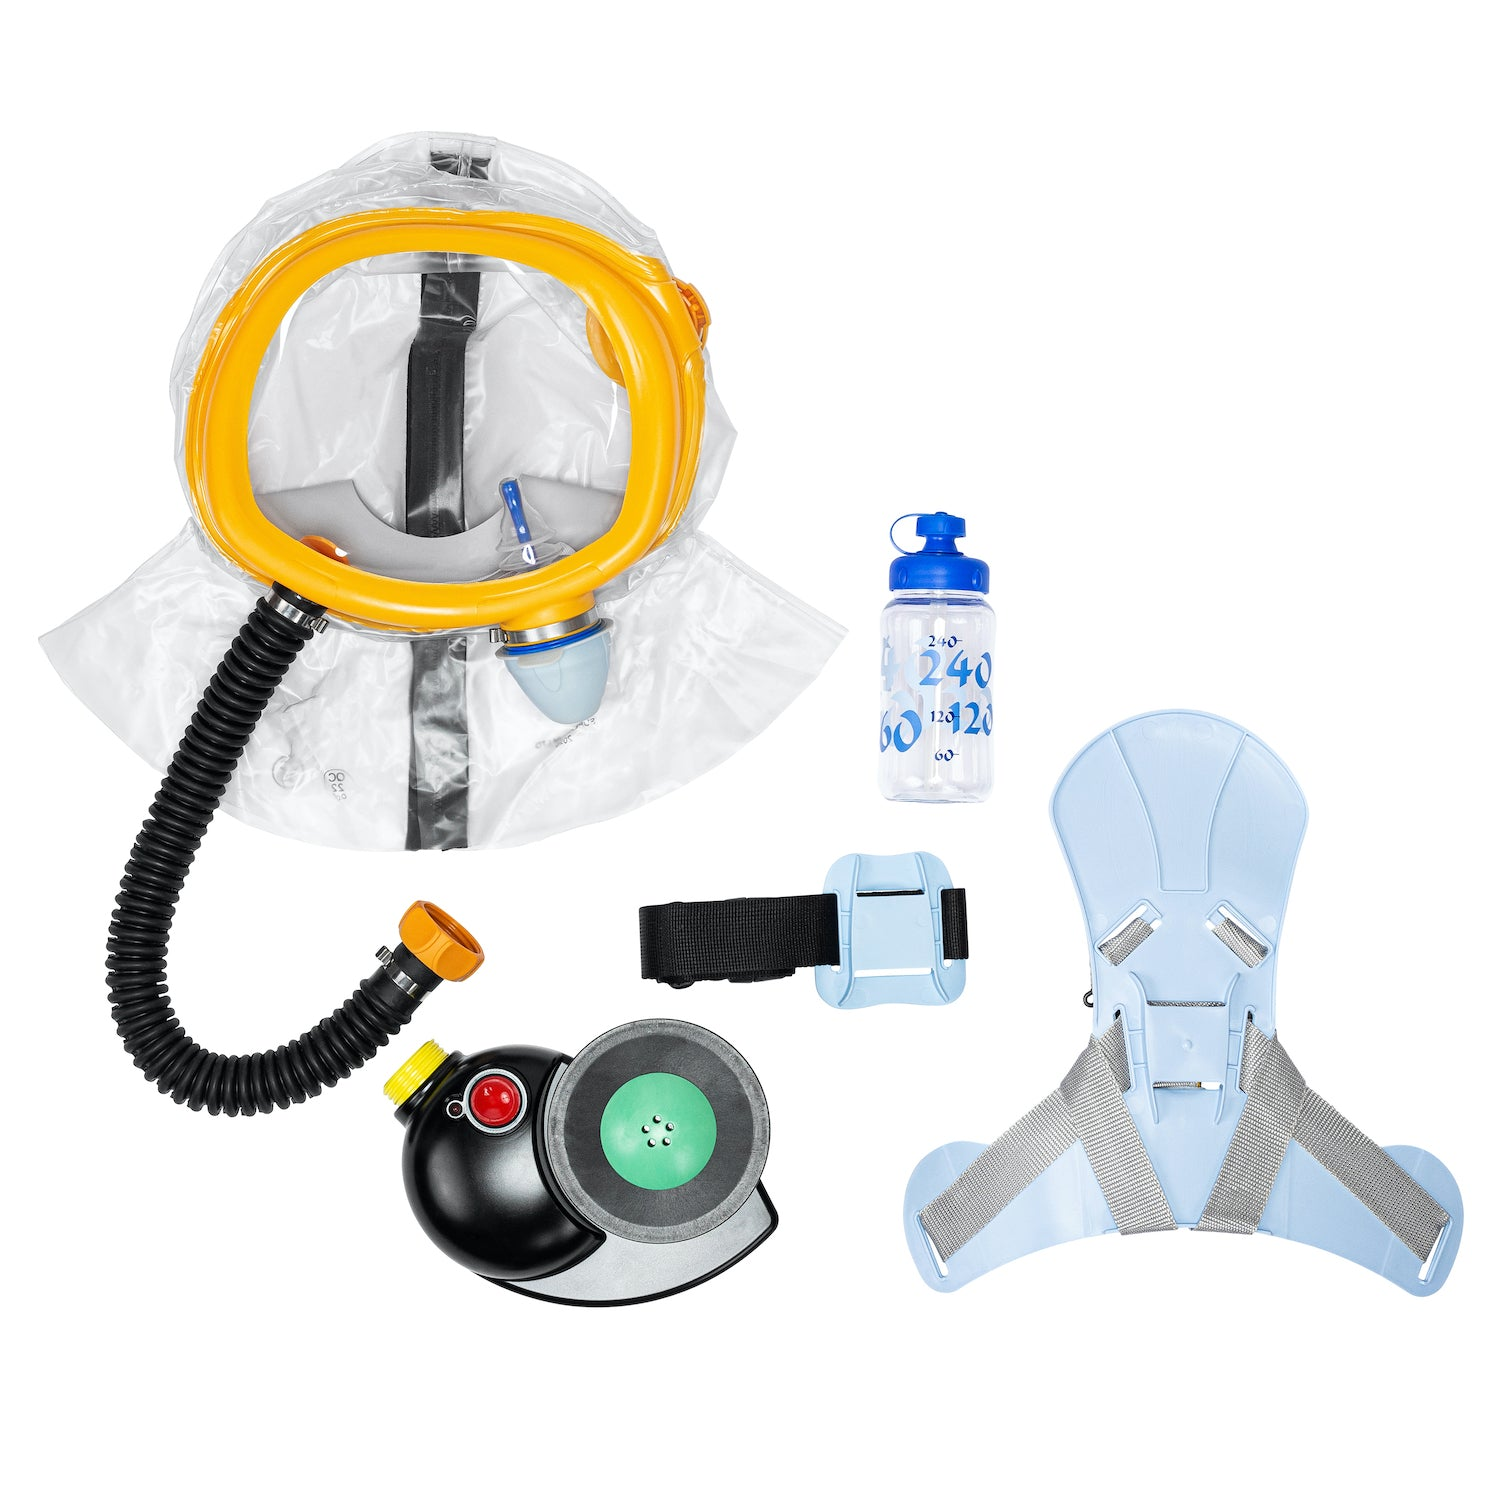 Full CM-3M kids respirator kit, disassembled on a white background